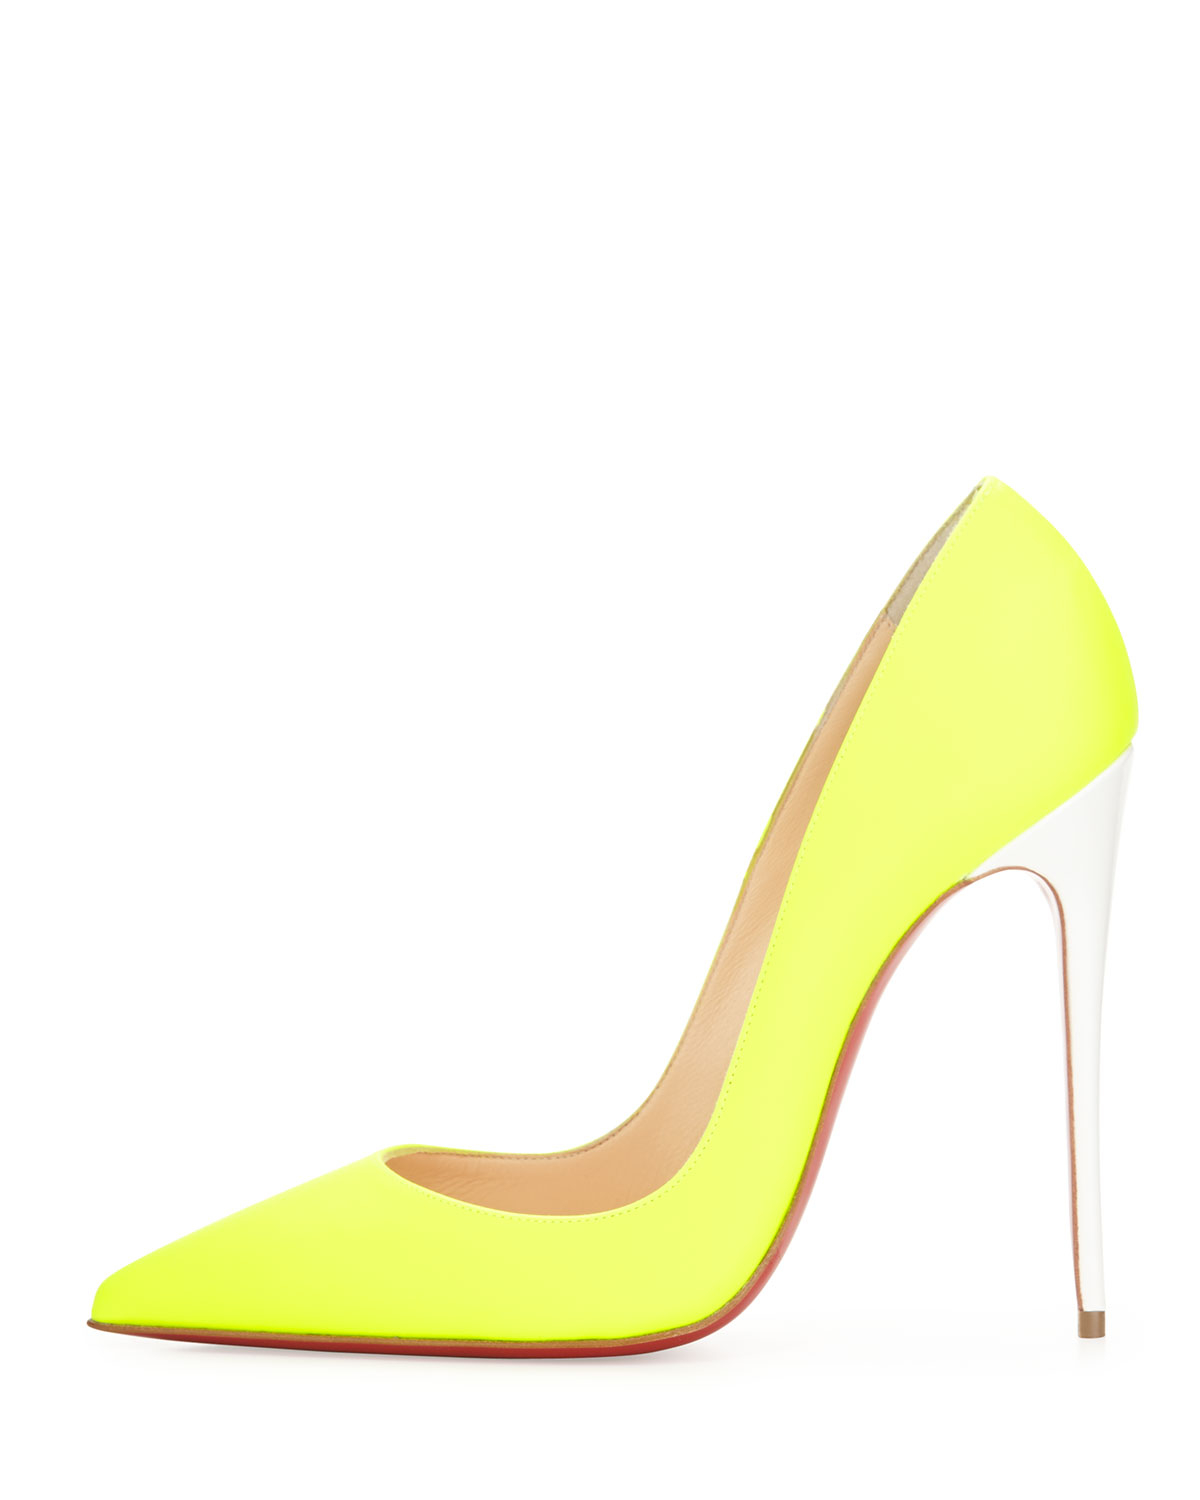 louboutin mens - Christian louboutin So Kate Fluorescent Leather Heels in Yellow | Lyst